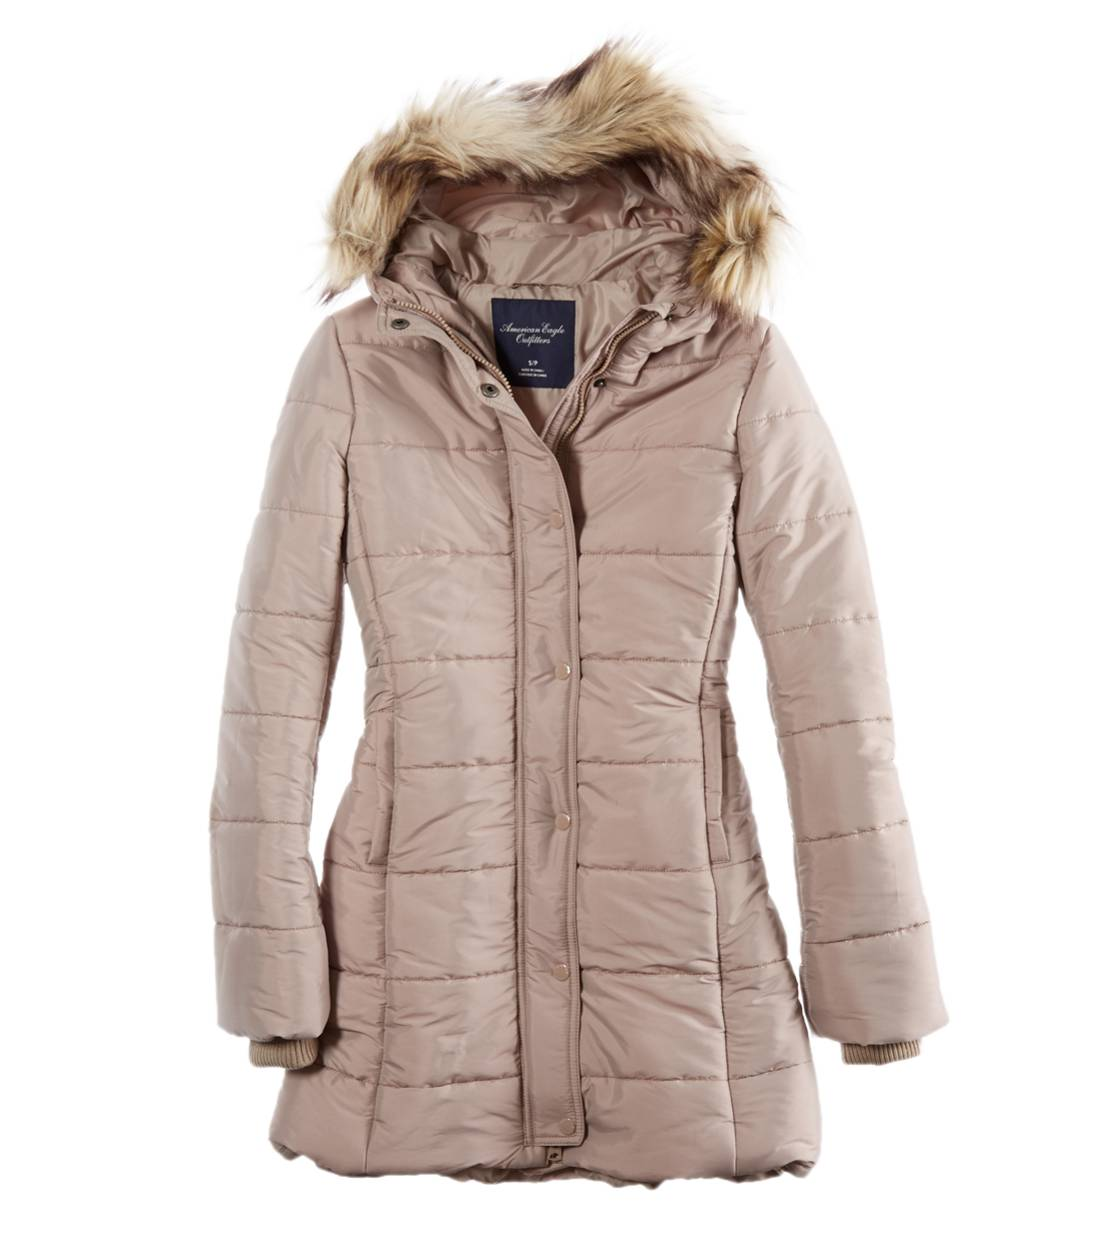 83% off American Eagle Outfitters Jackets & Blazers ...  Dog Jacket American Eagle Outfitters